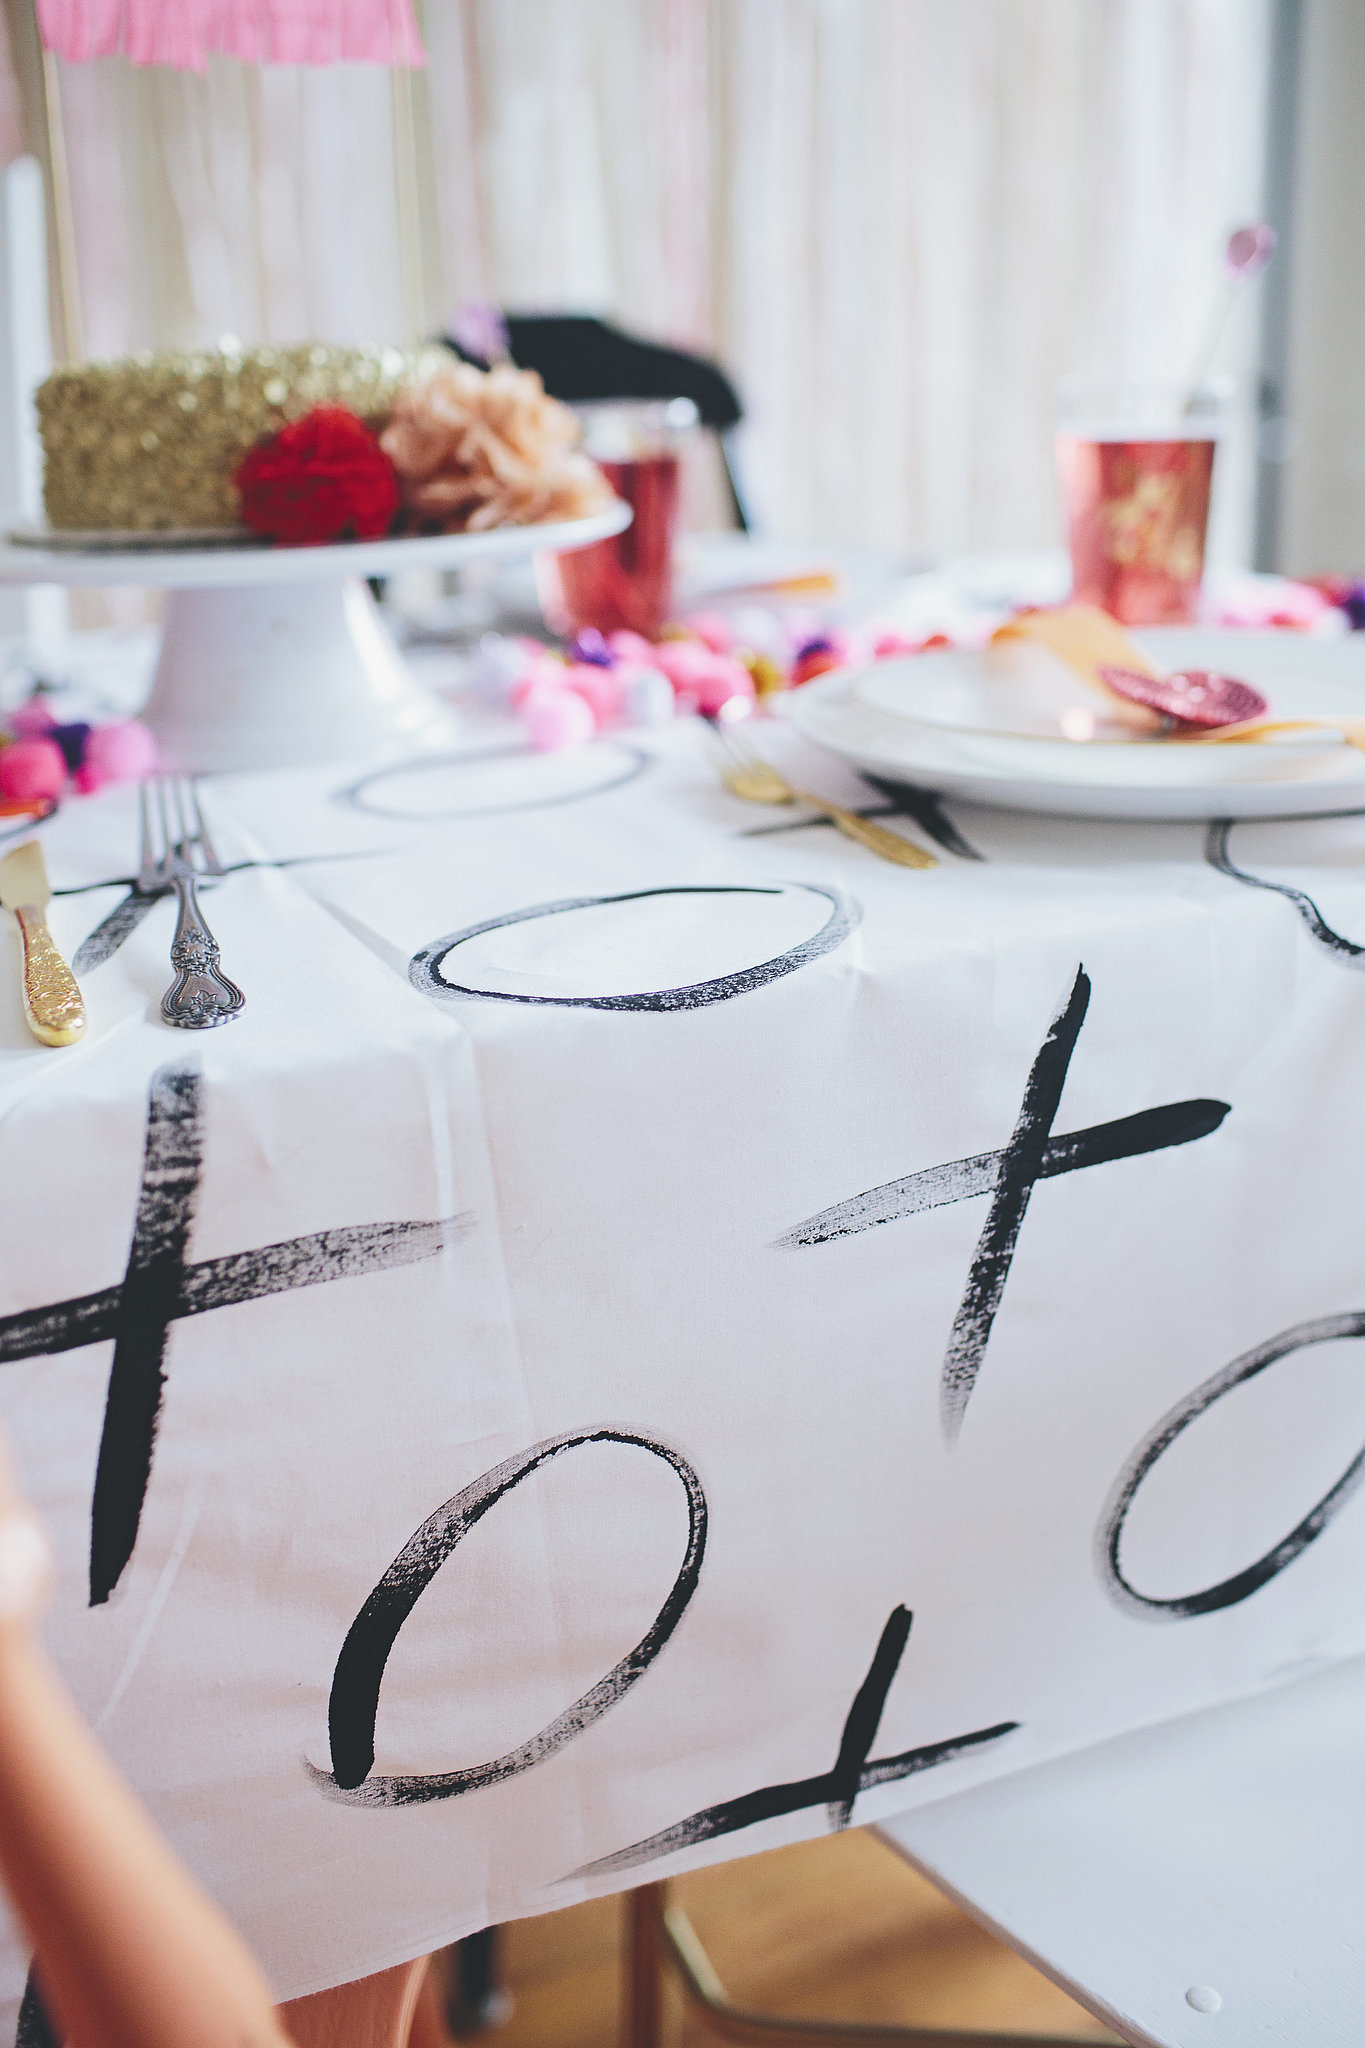 DIY Tablecloth: Host a Galentine's Day Party For Your Lady Friends | PopSugar | Valentine's Day Inspiration